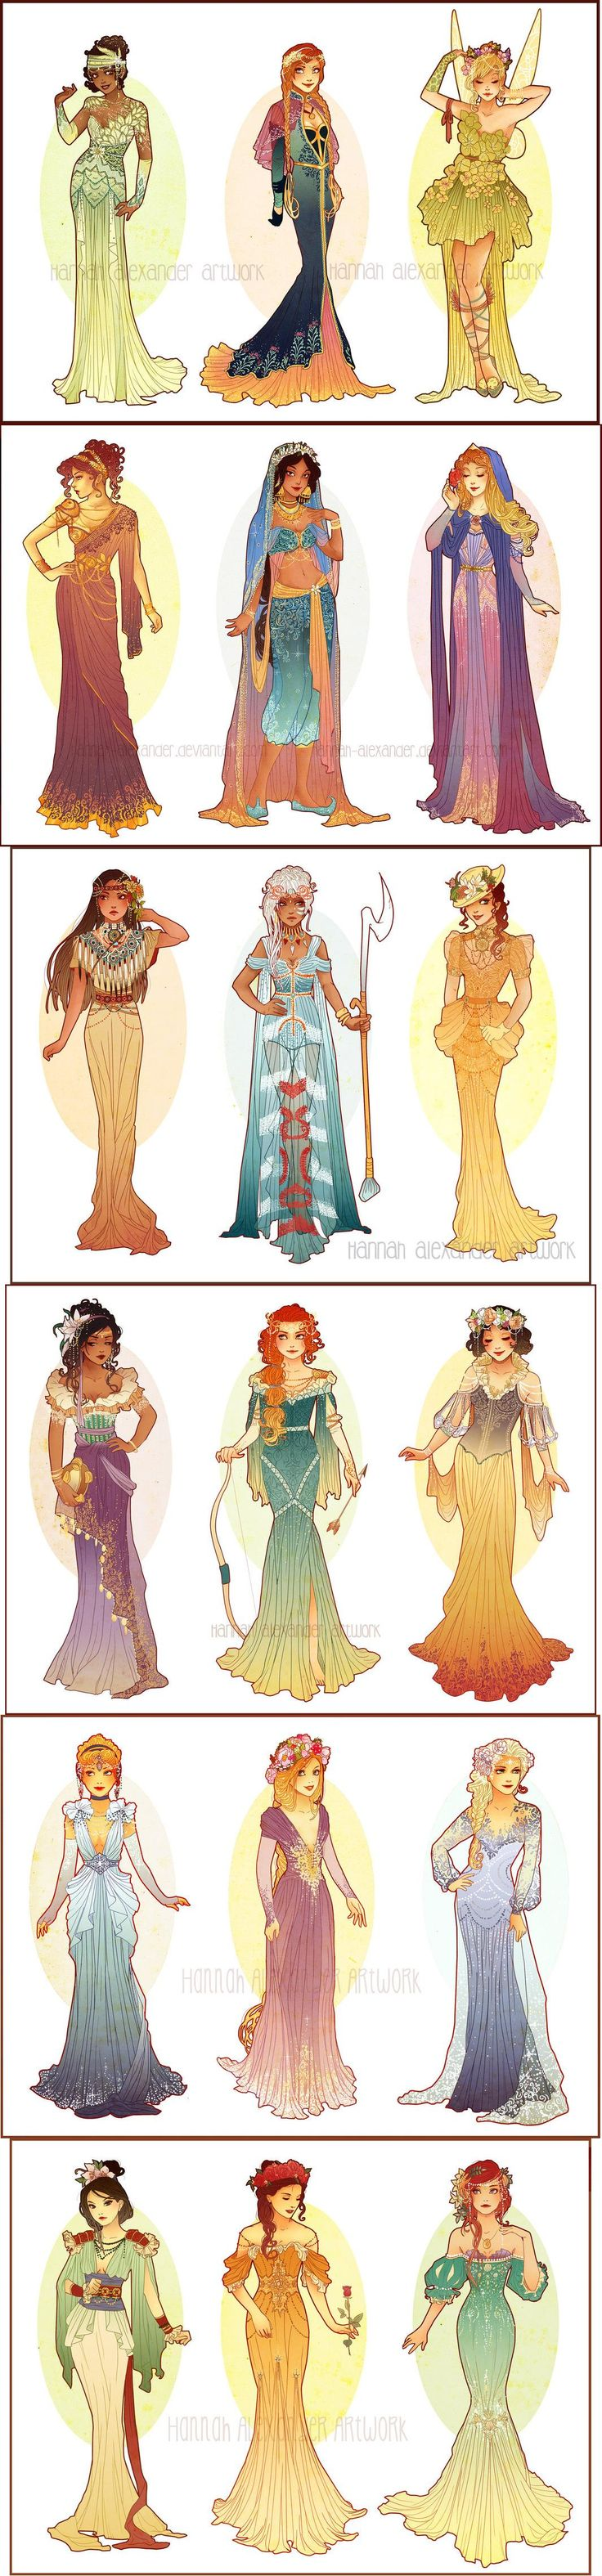 One of my favorite artists!!! Art Nouveau Costume Designs by Hannah-Alexander